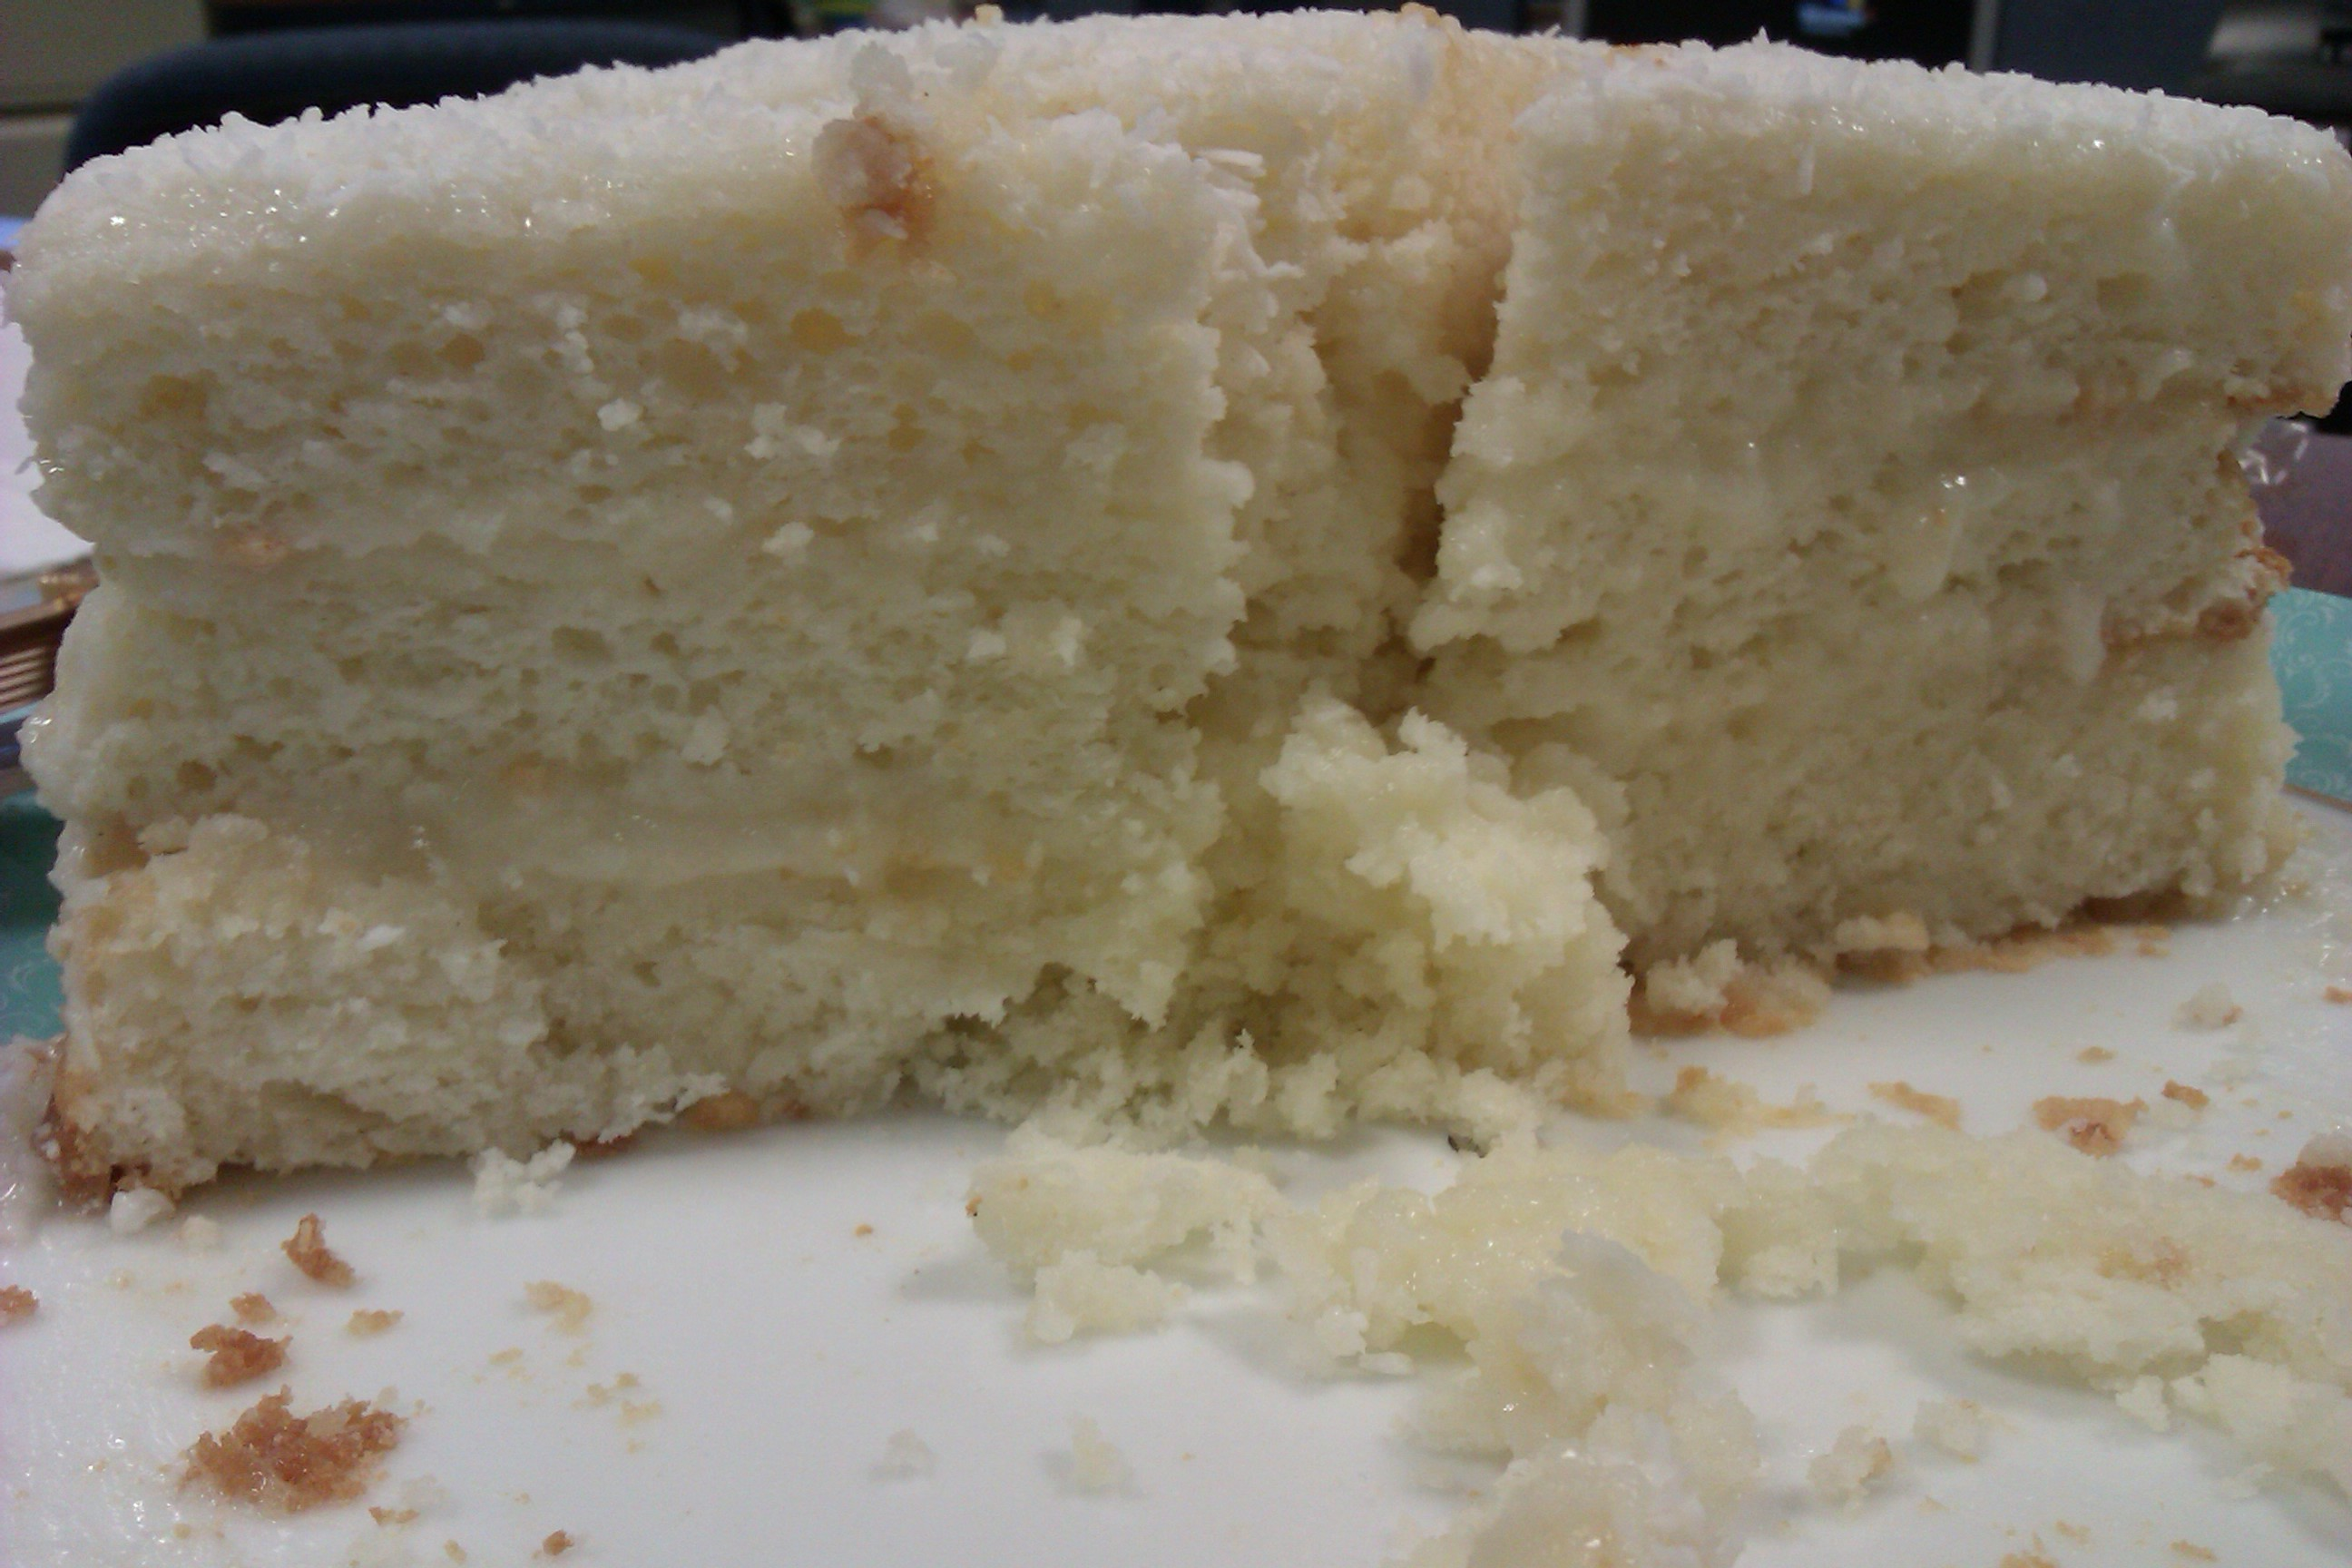 Coconut oil bundt cake recipes